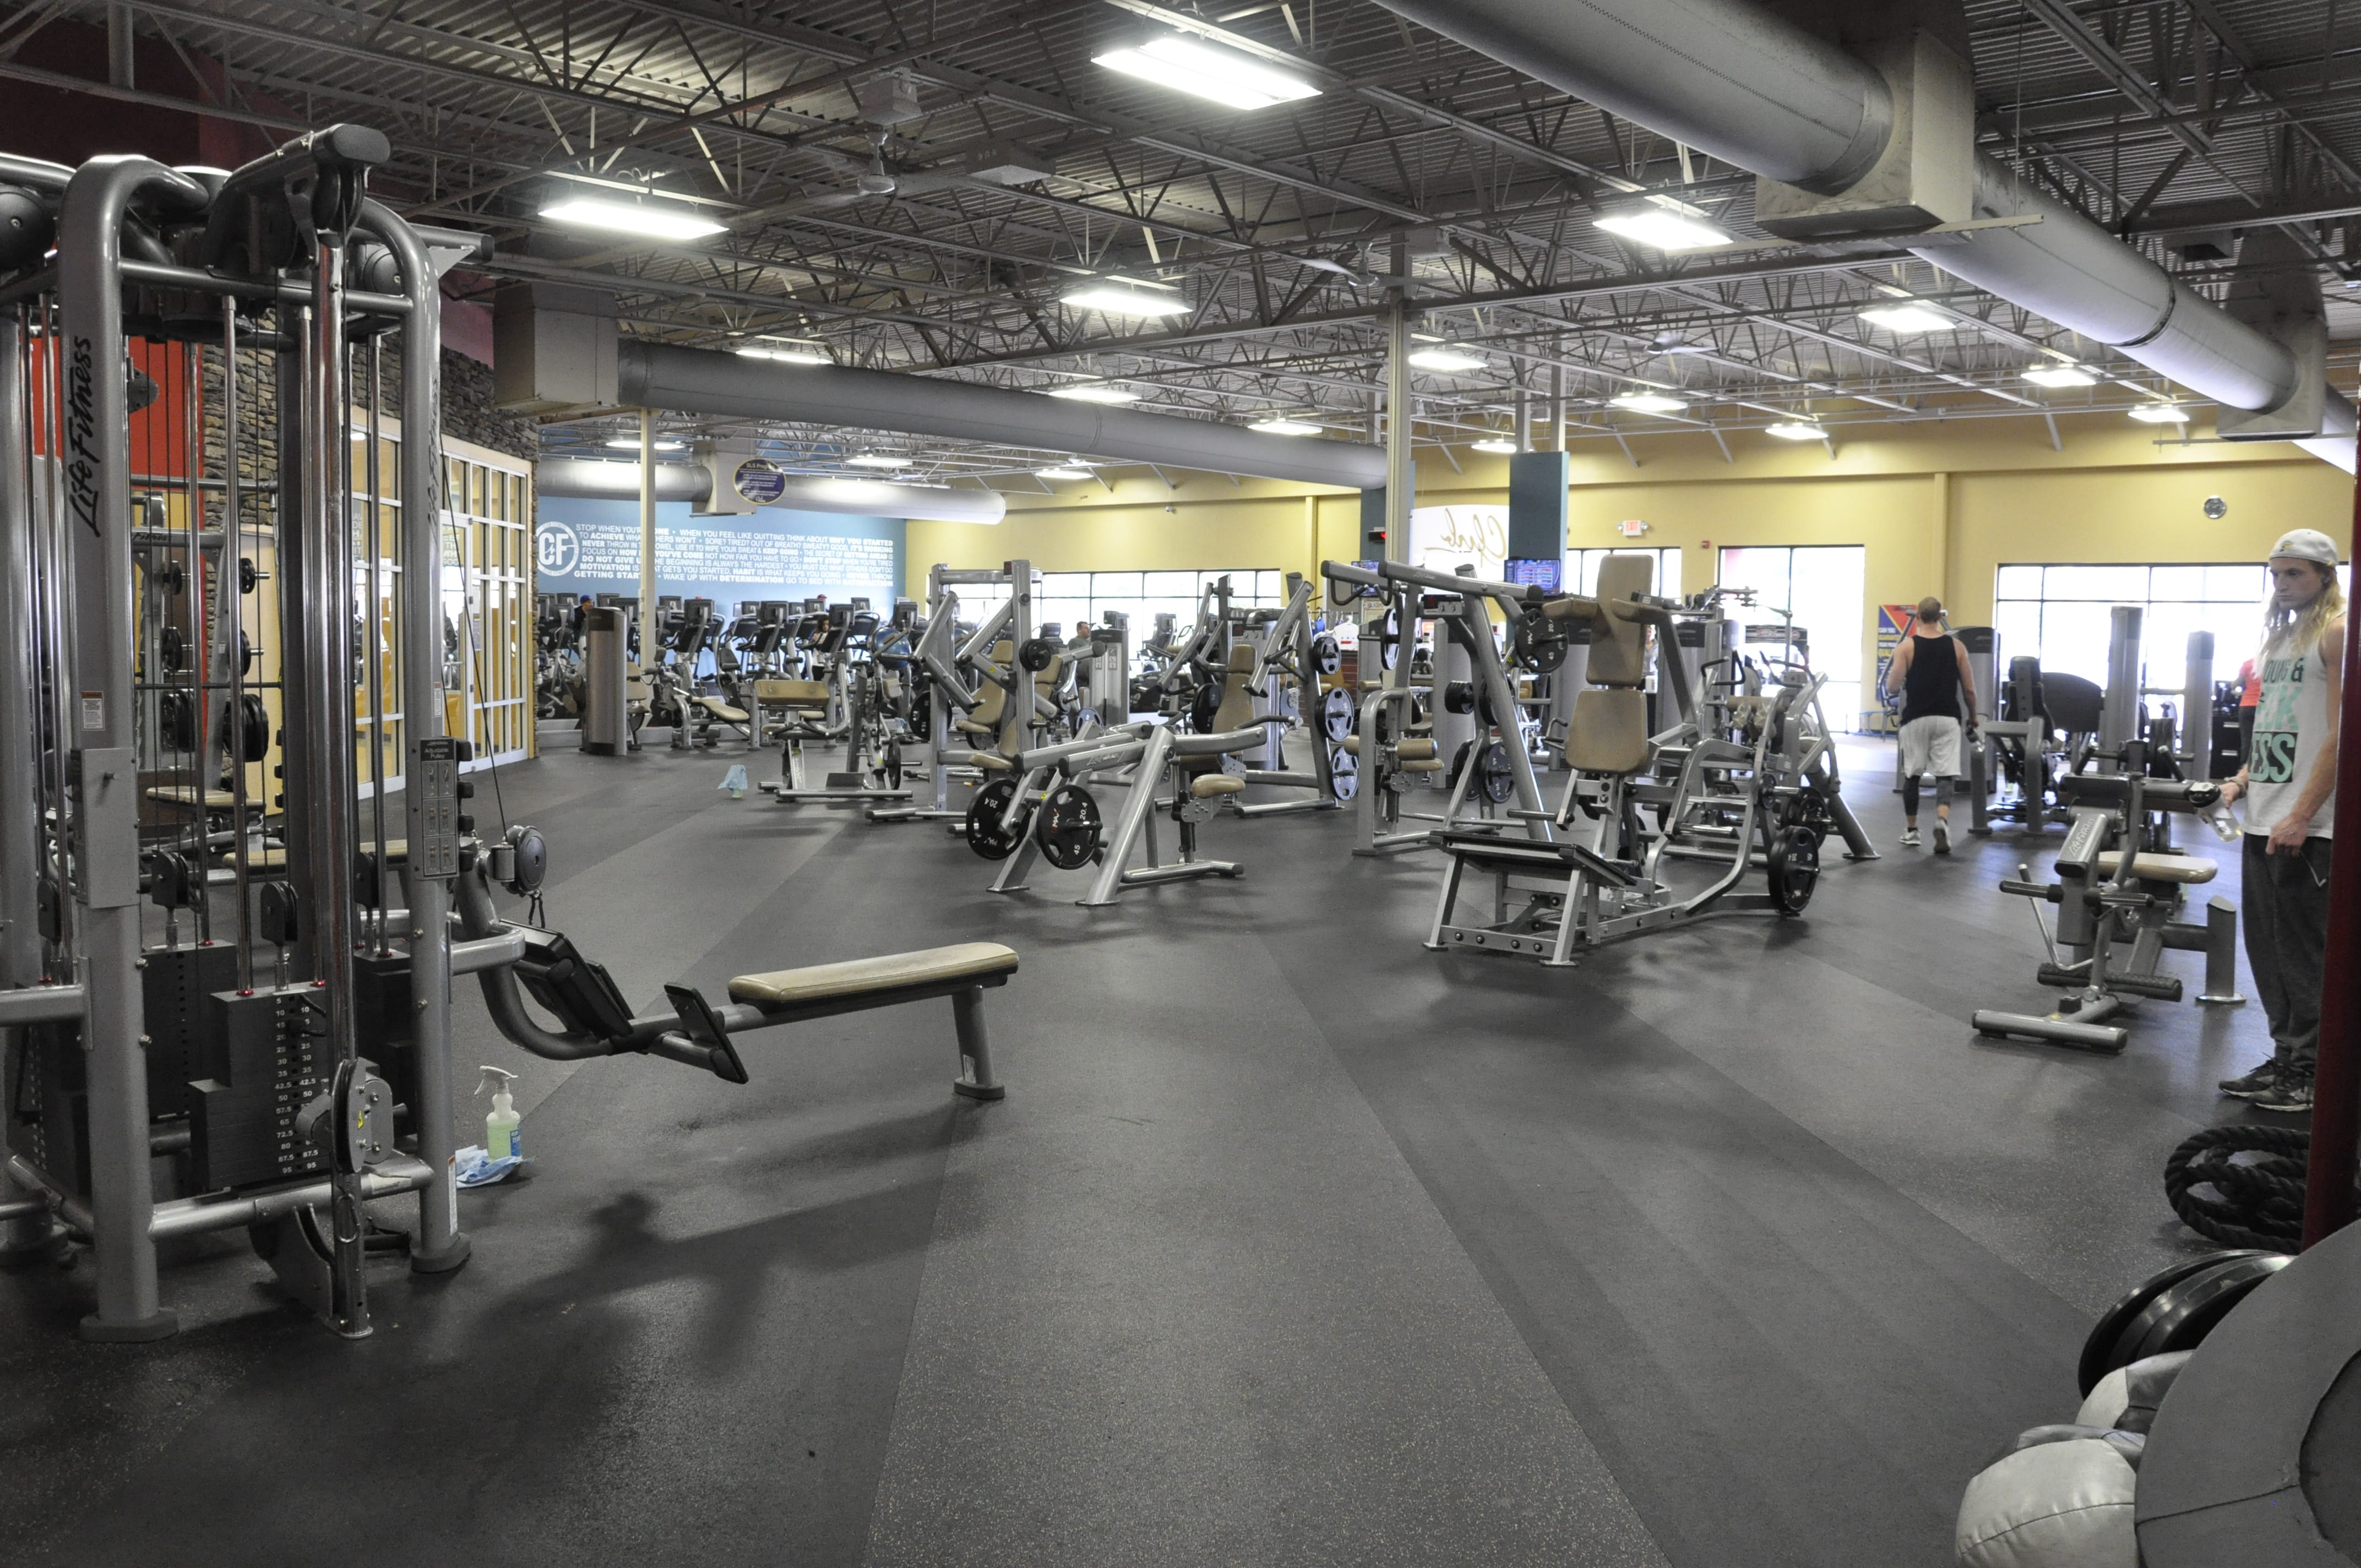 Club Fitness image 1